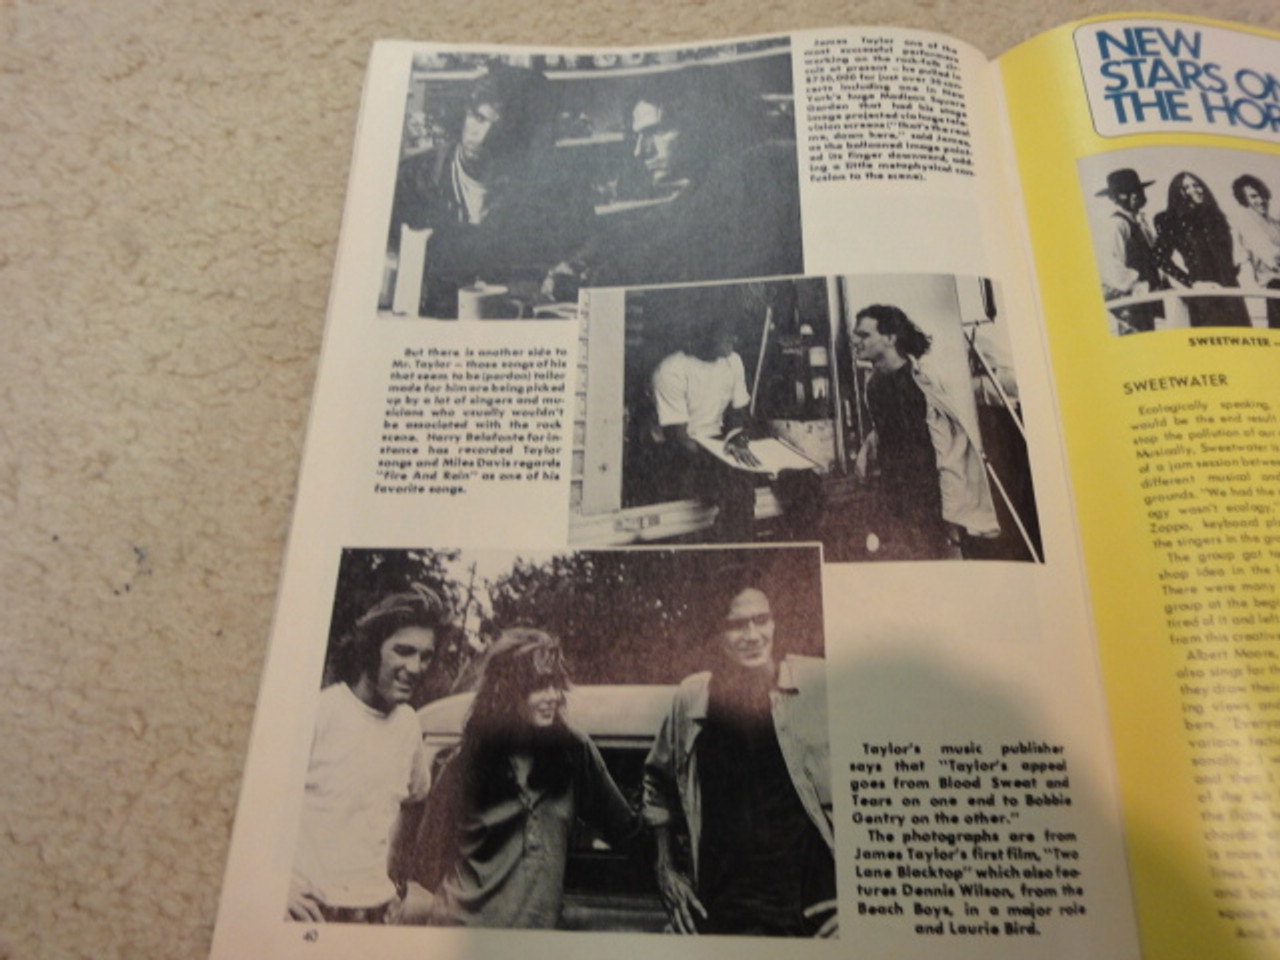 Taylor, James Hit Parader Magazine 1971 Signed Autograph Color Cover Photo